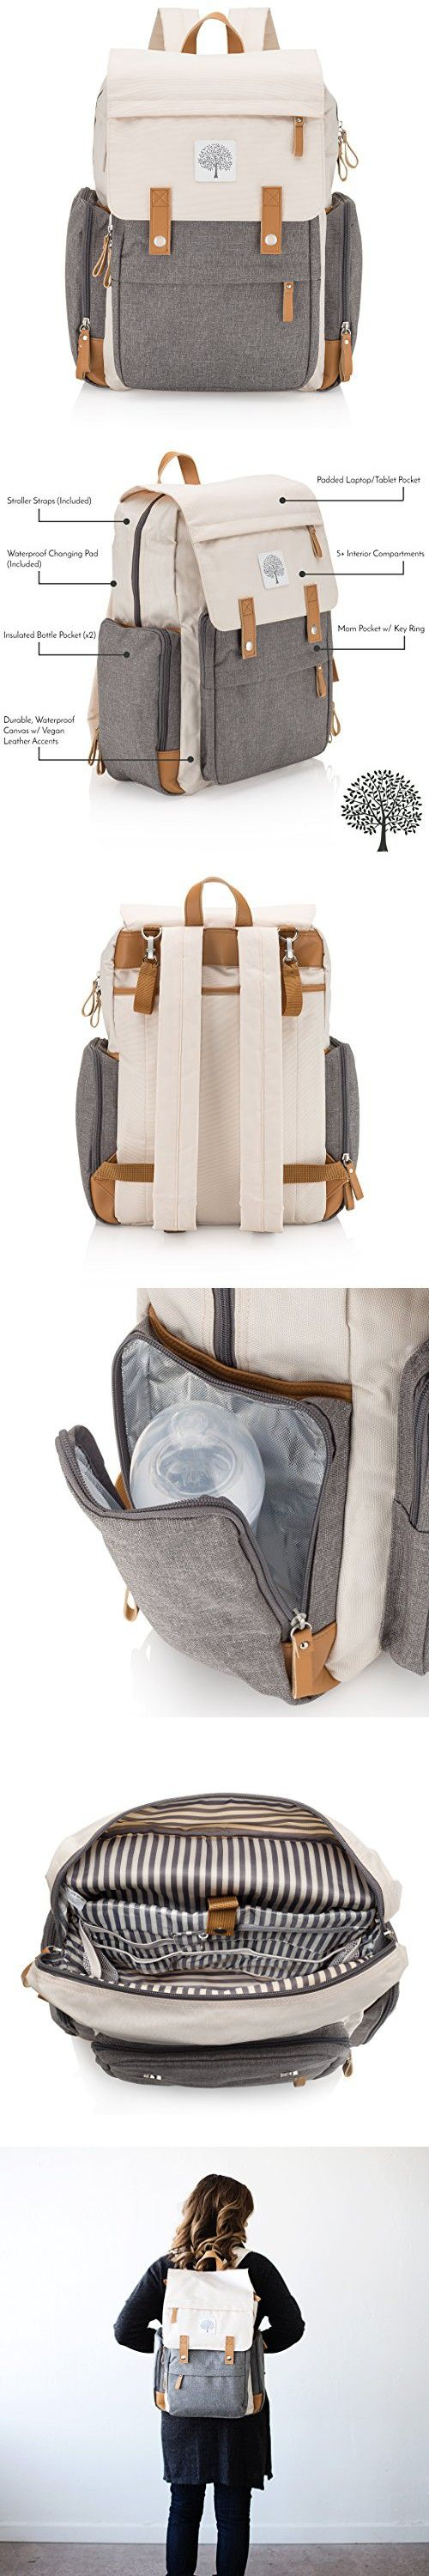 a3cc841be0 Parker Baby Diaper Backpack - Large Diaper Bag with Insulated Pockets,  Stroller Straps and Changing Pad -